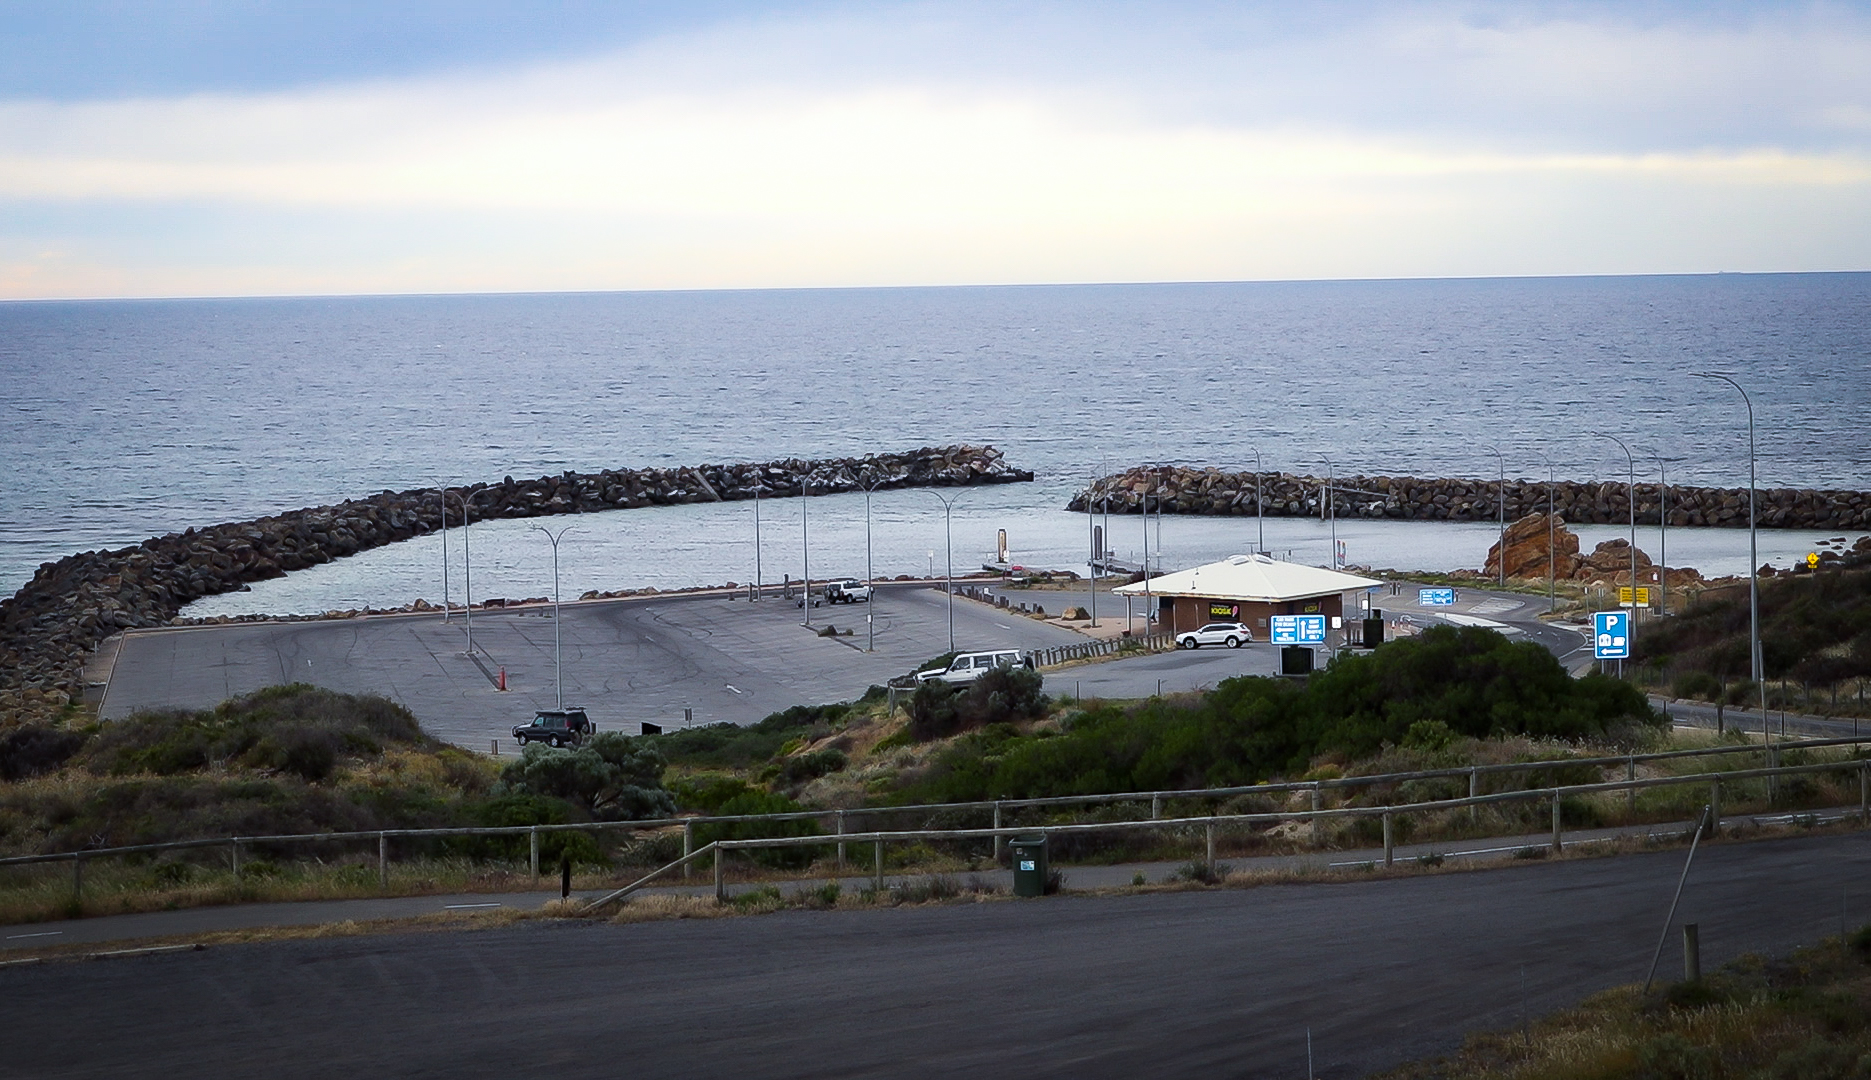 A view of the O'Sullivan Beach car park, kiosk and boat ramp, taken from a hill.